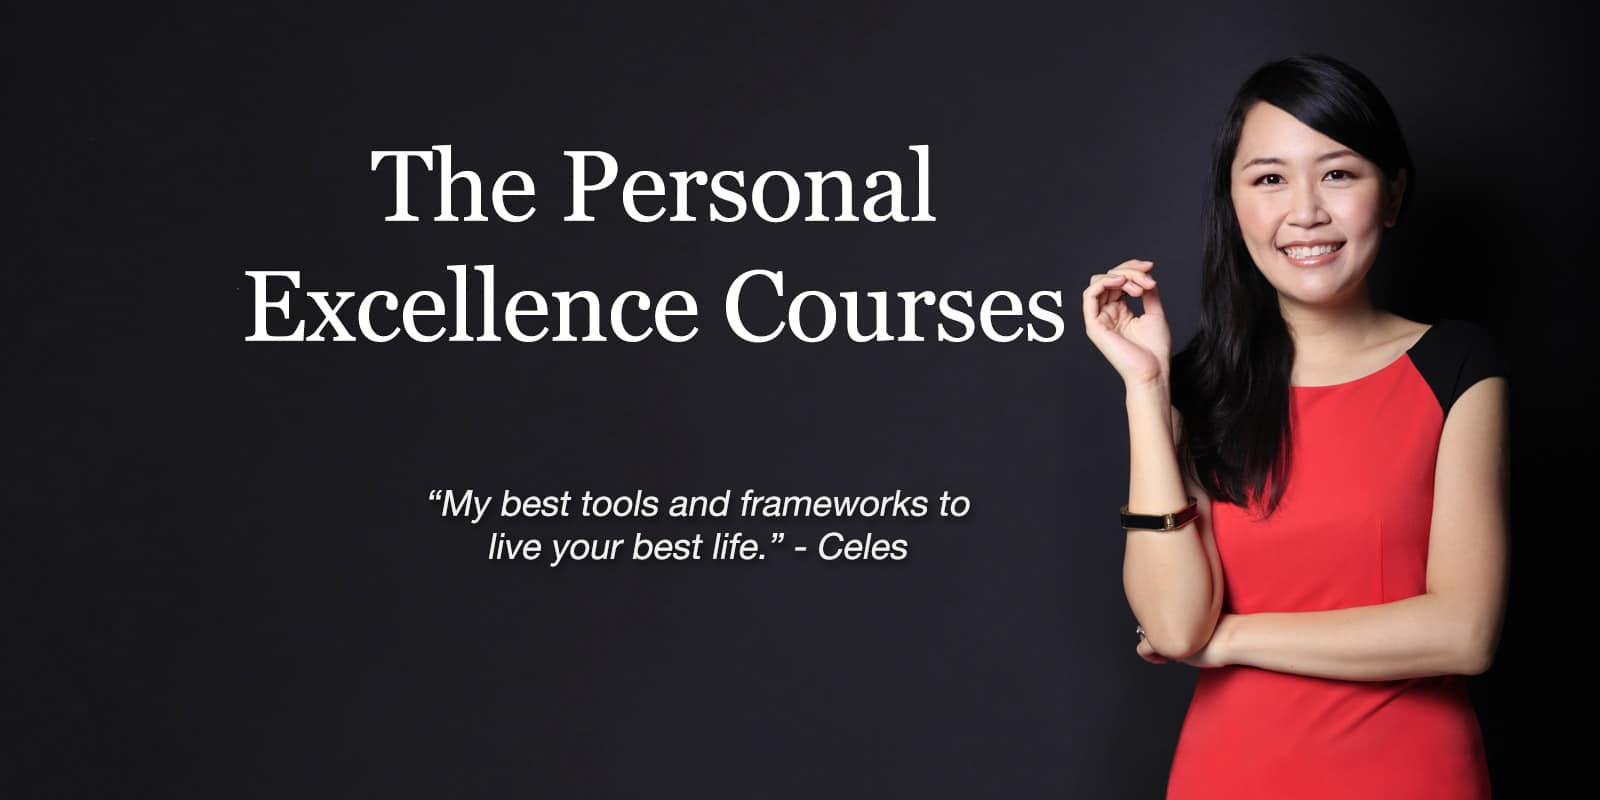 Personal Excellence Courses